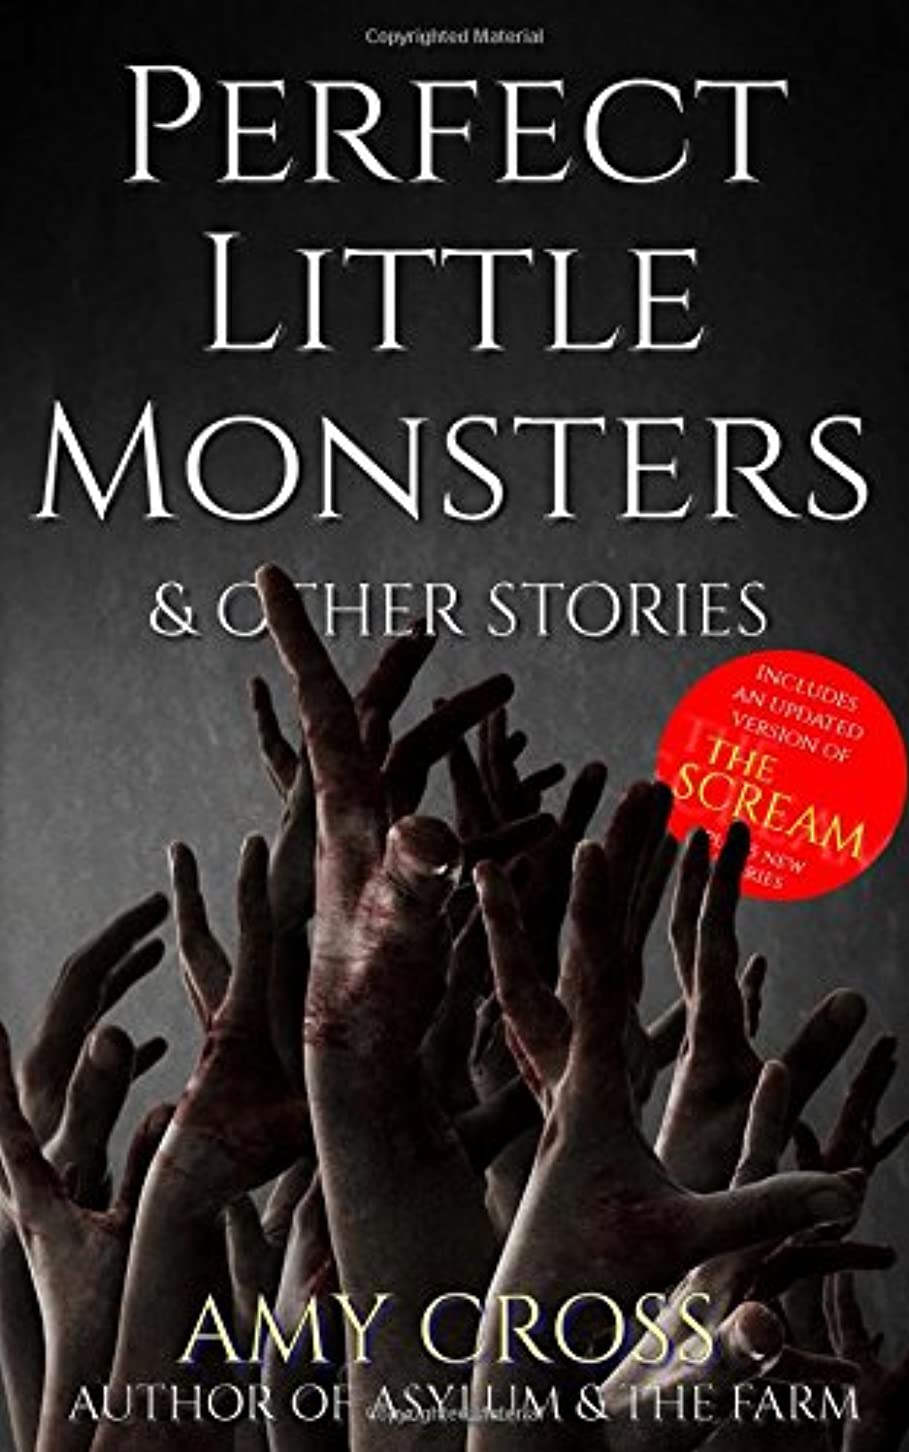 気づく持続的出しますPerfect Little Monsters and Other Stories